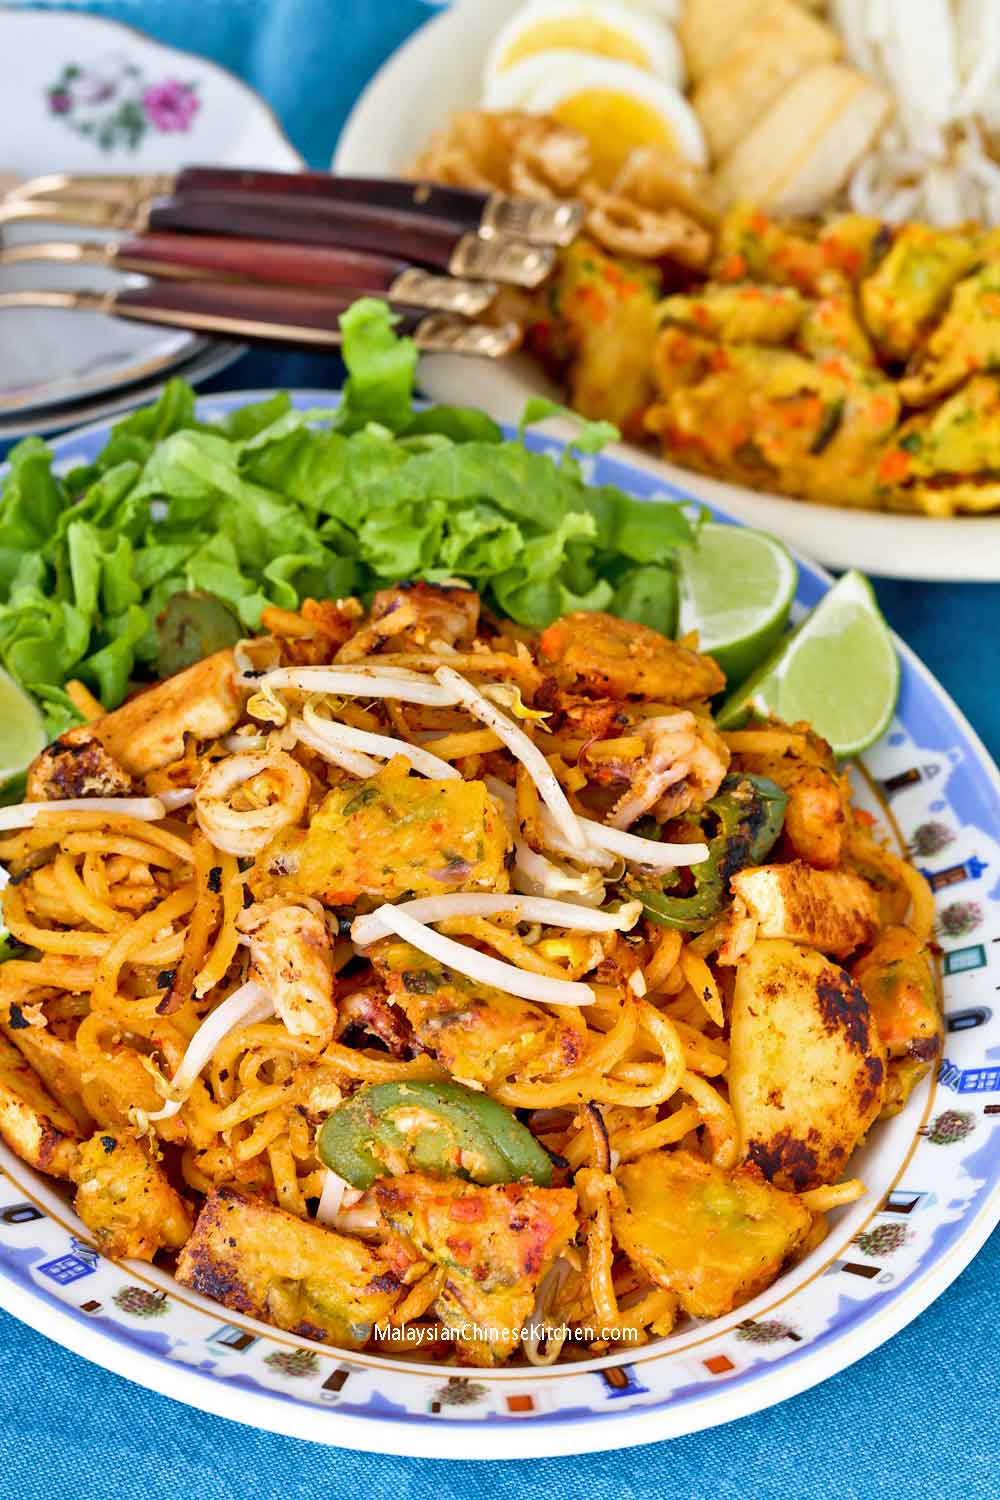 Mee Goreng Mamak served with shredded lettuce and lime wedges.